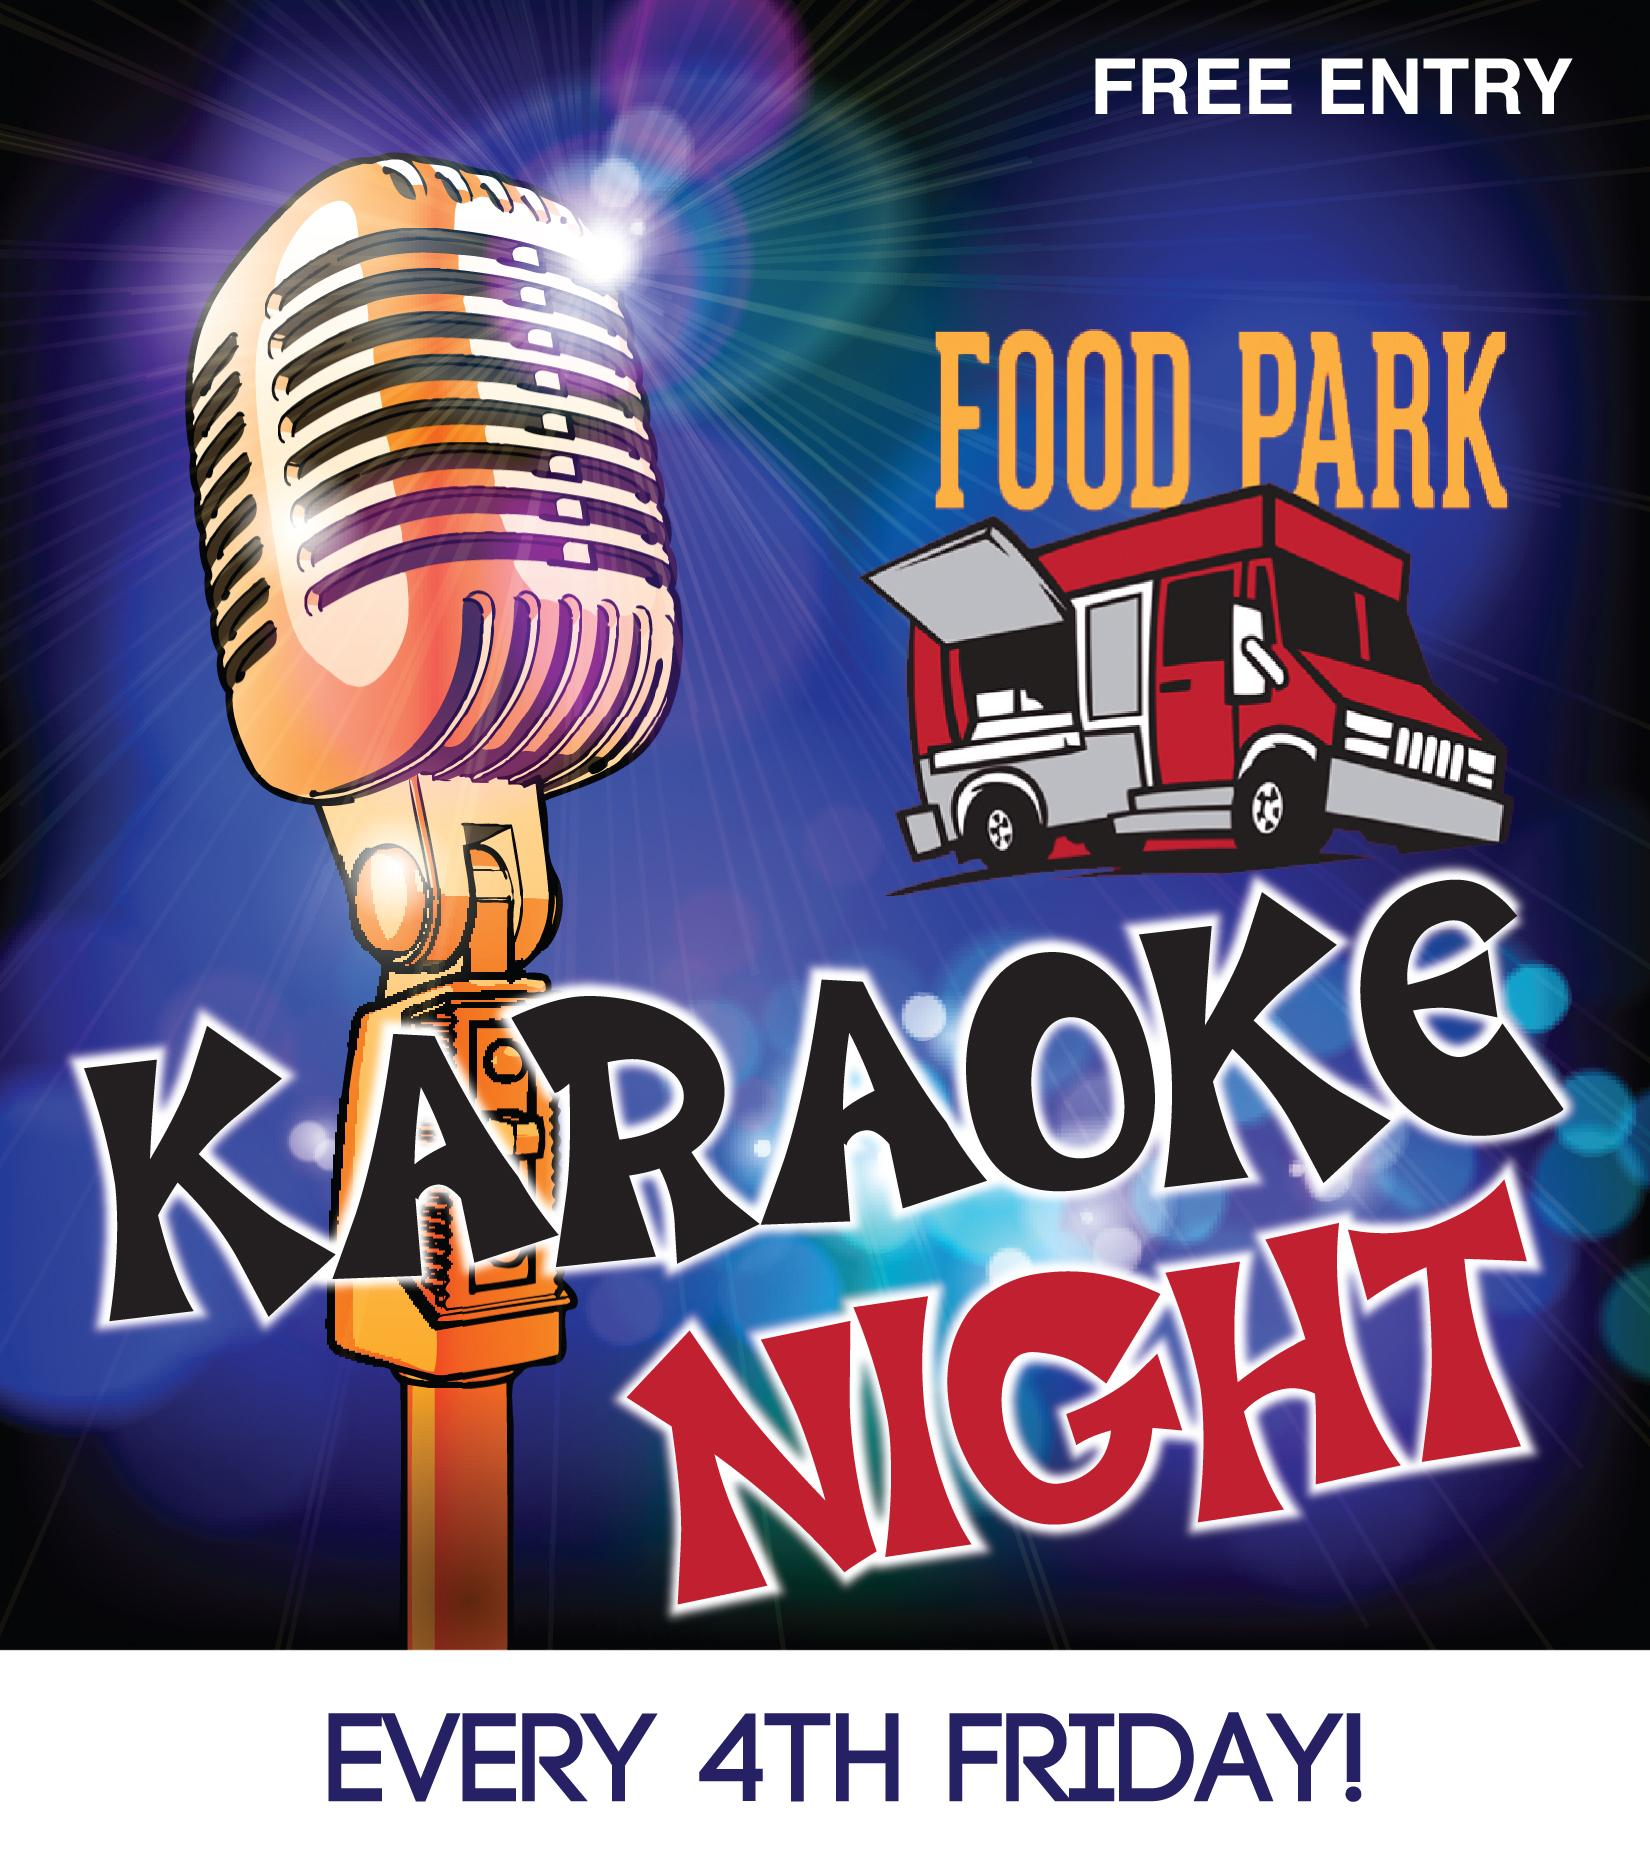 2017 May The 4th Be With You: Karaoke Night At McAllen Food Park